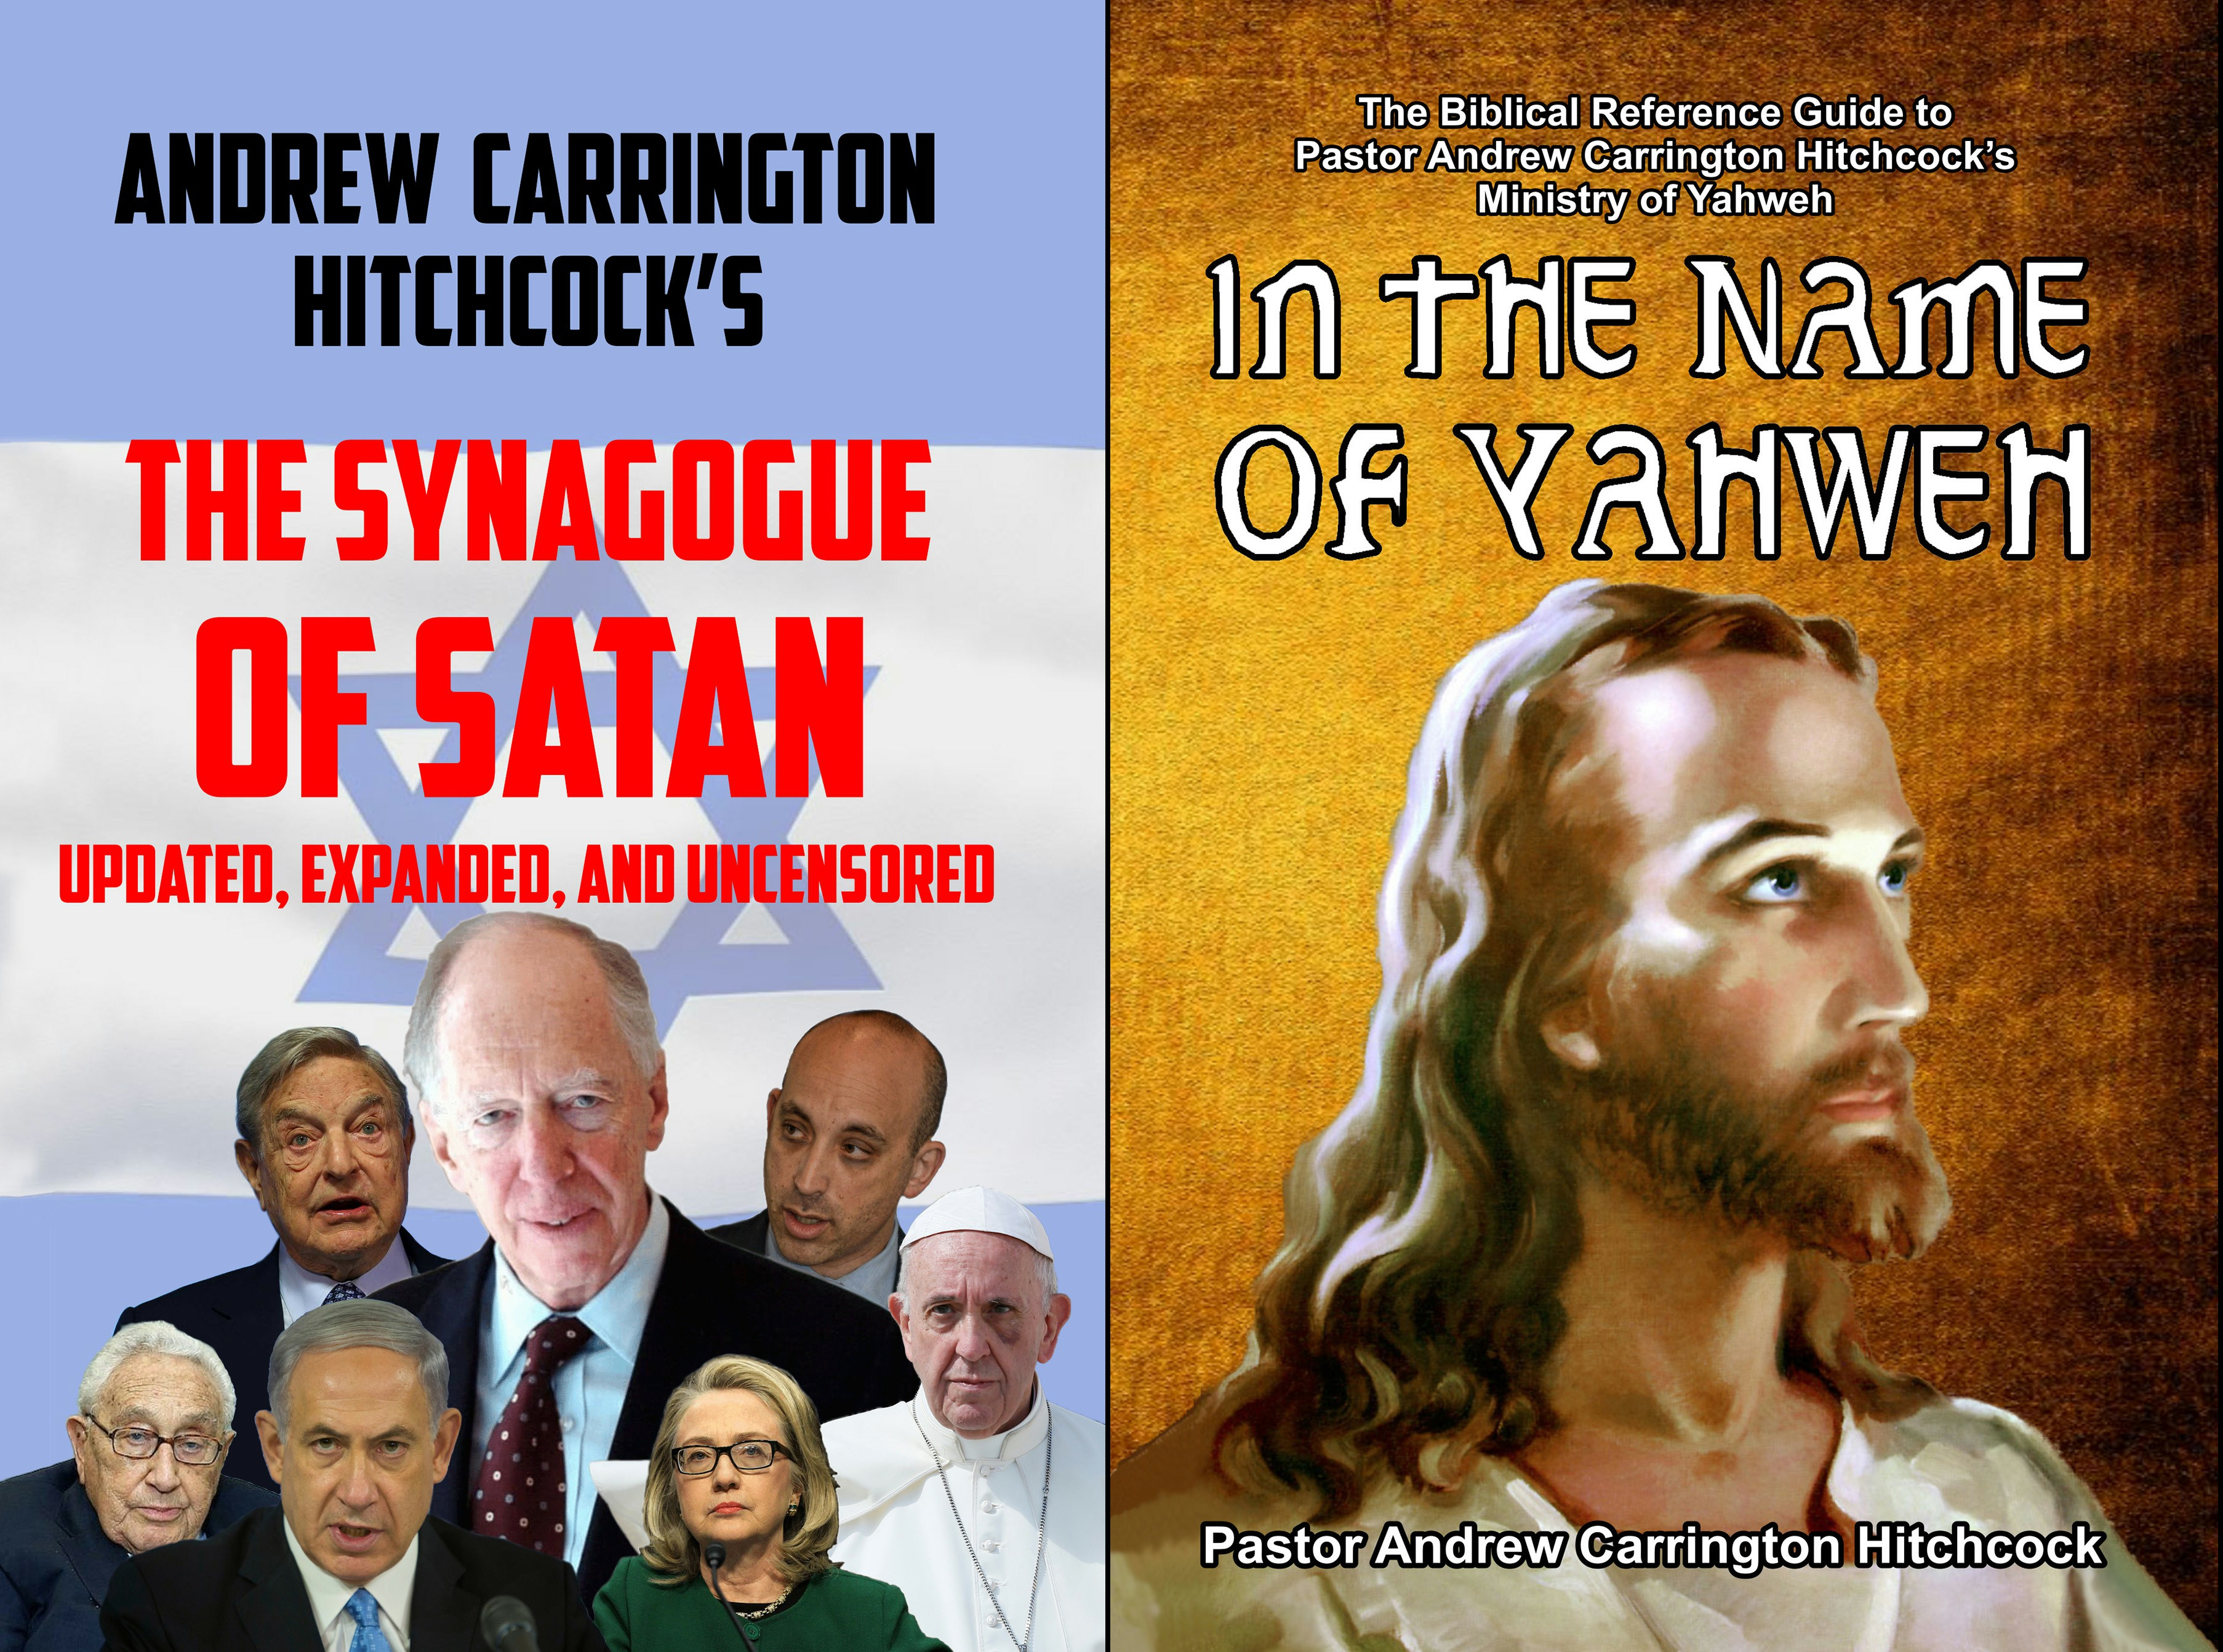 The Andrew Carrington Hitchcock Show (814) Dave Gahary – The New Versions Of The Synagogue Of Satan Updated, Expanded, And Uncensored & In The Name Of Yahweh